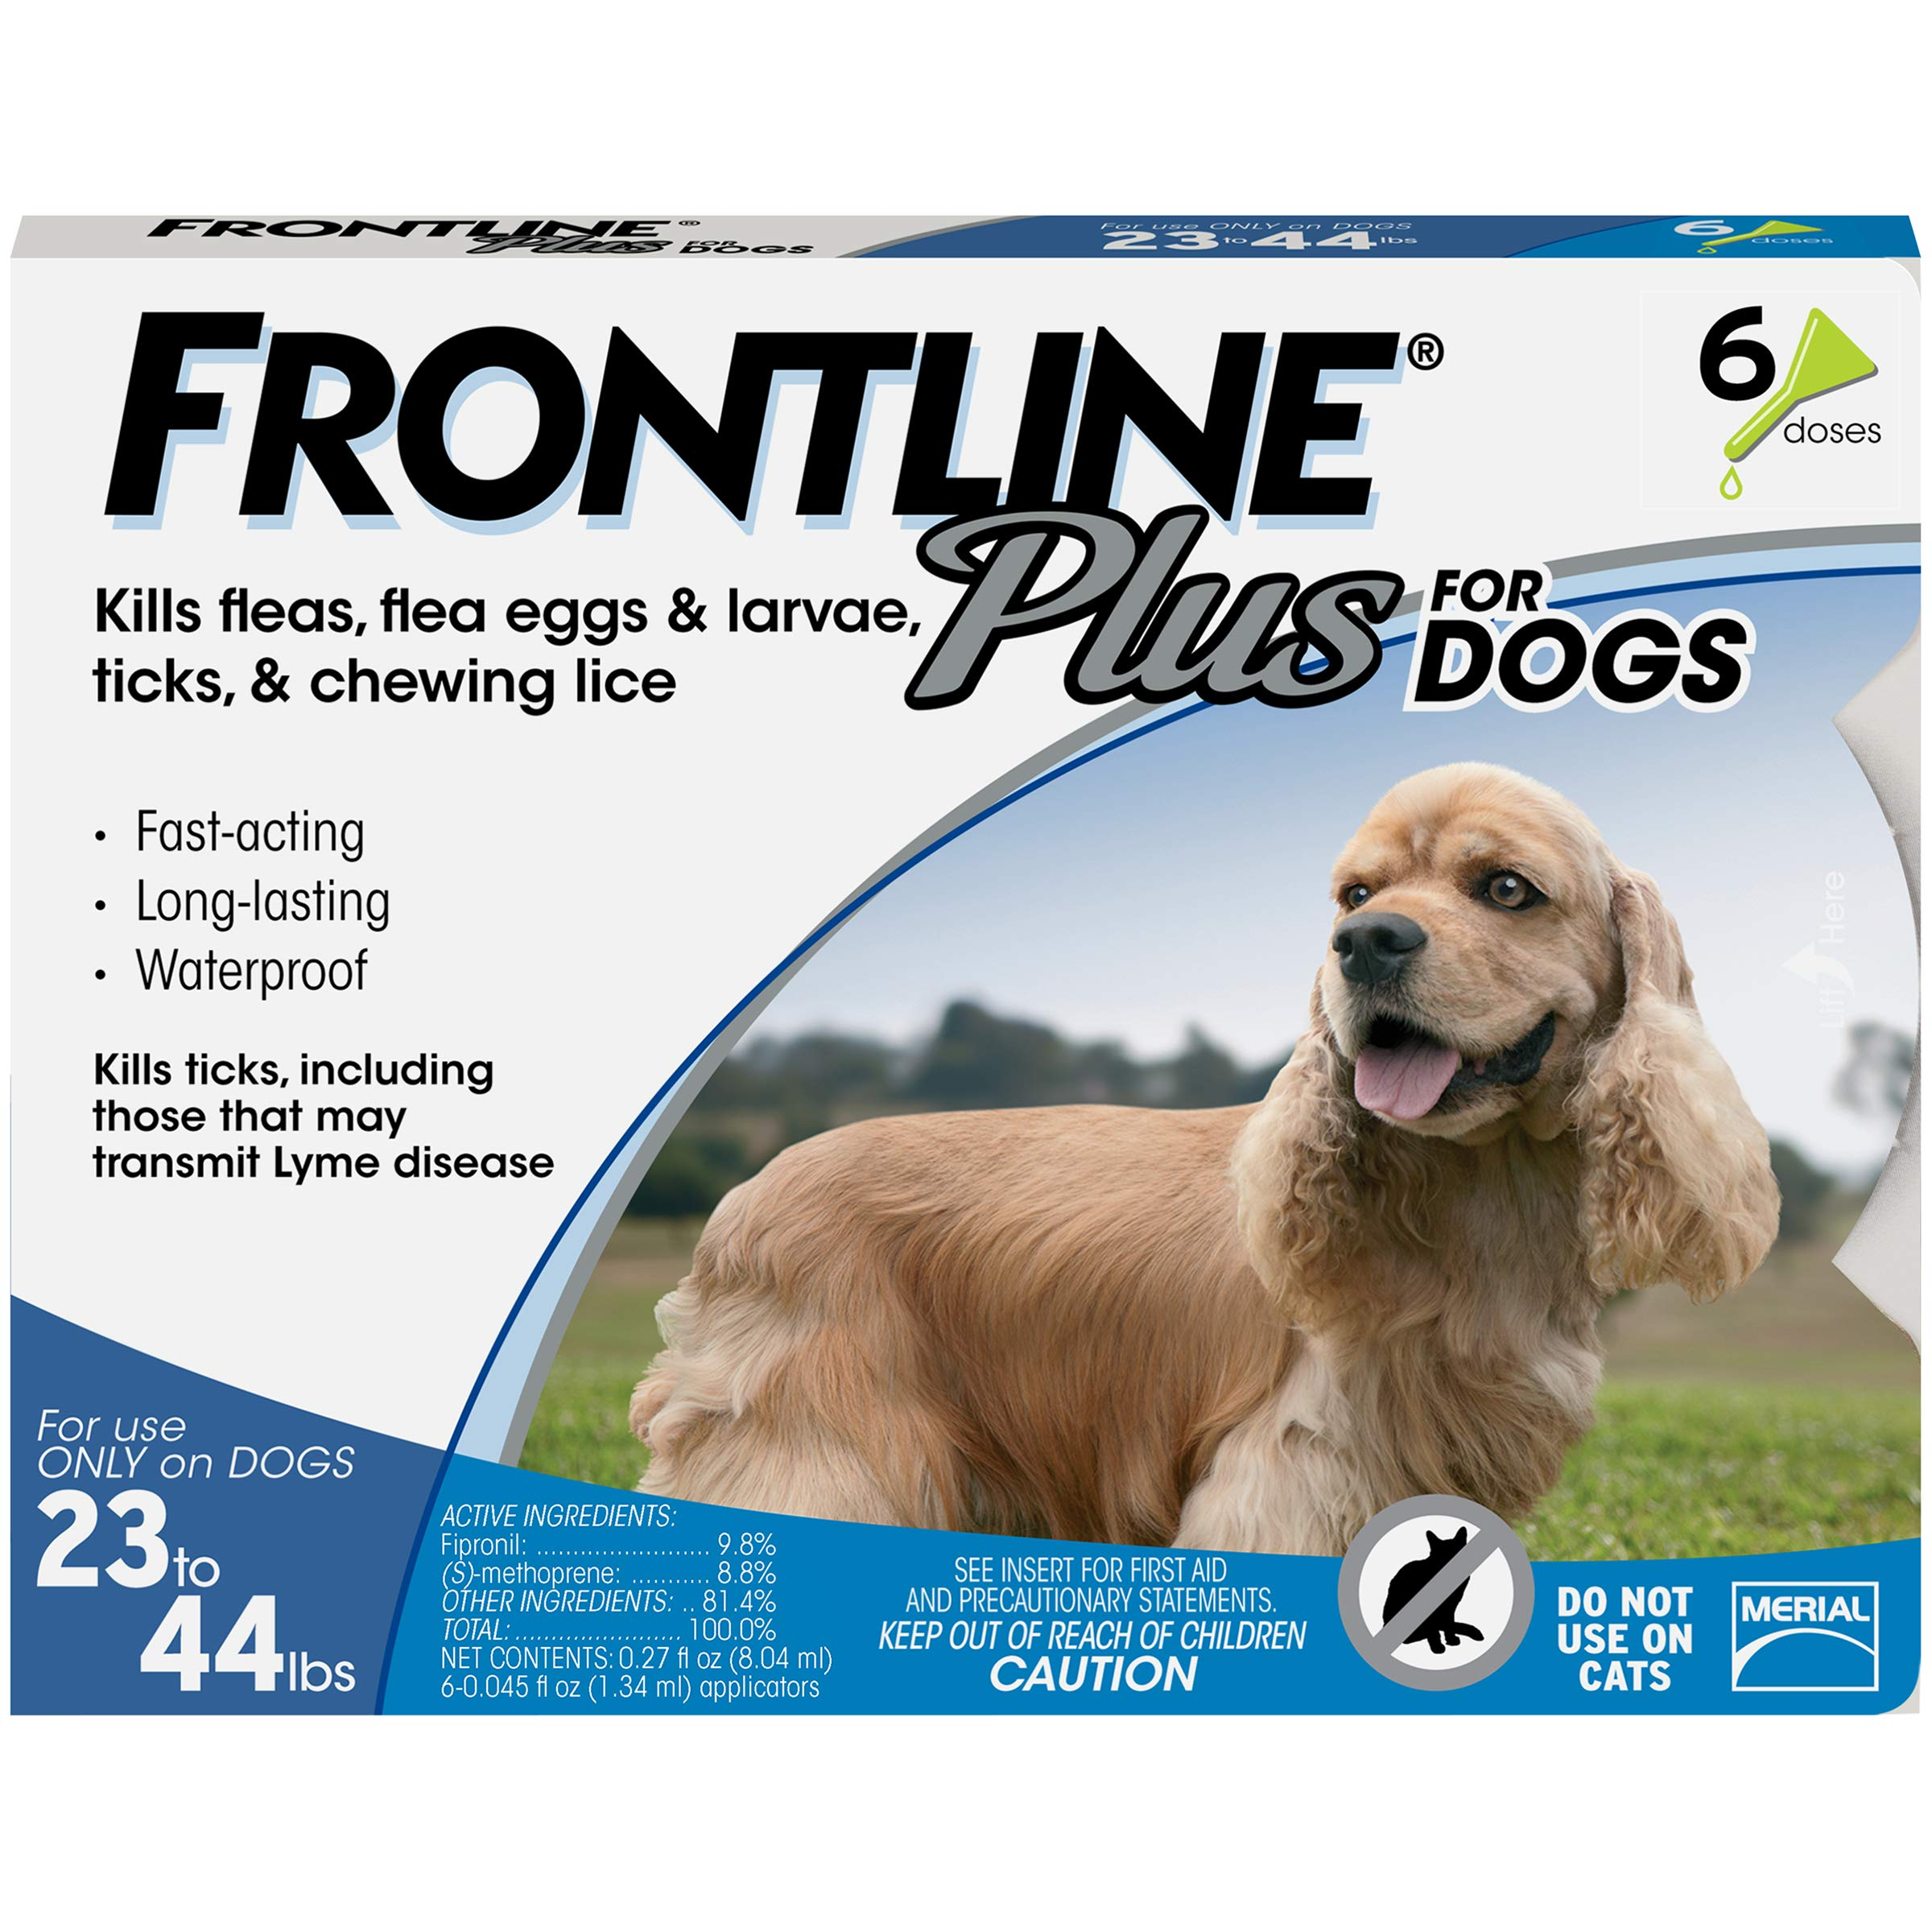 Frontline Plus for Dogs Medium Dog (23-44 pounds) Flea and Tick Treatment, 6 Doses by Frontline